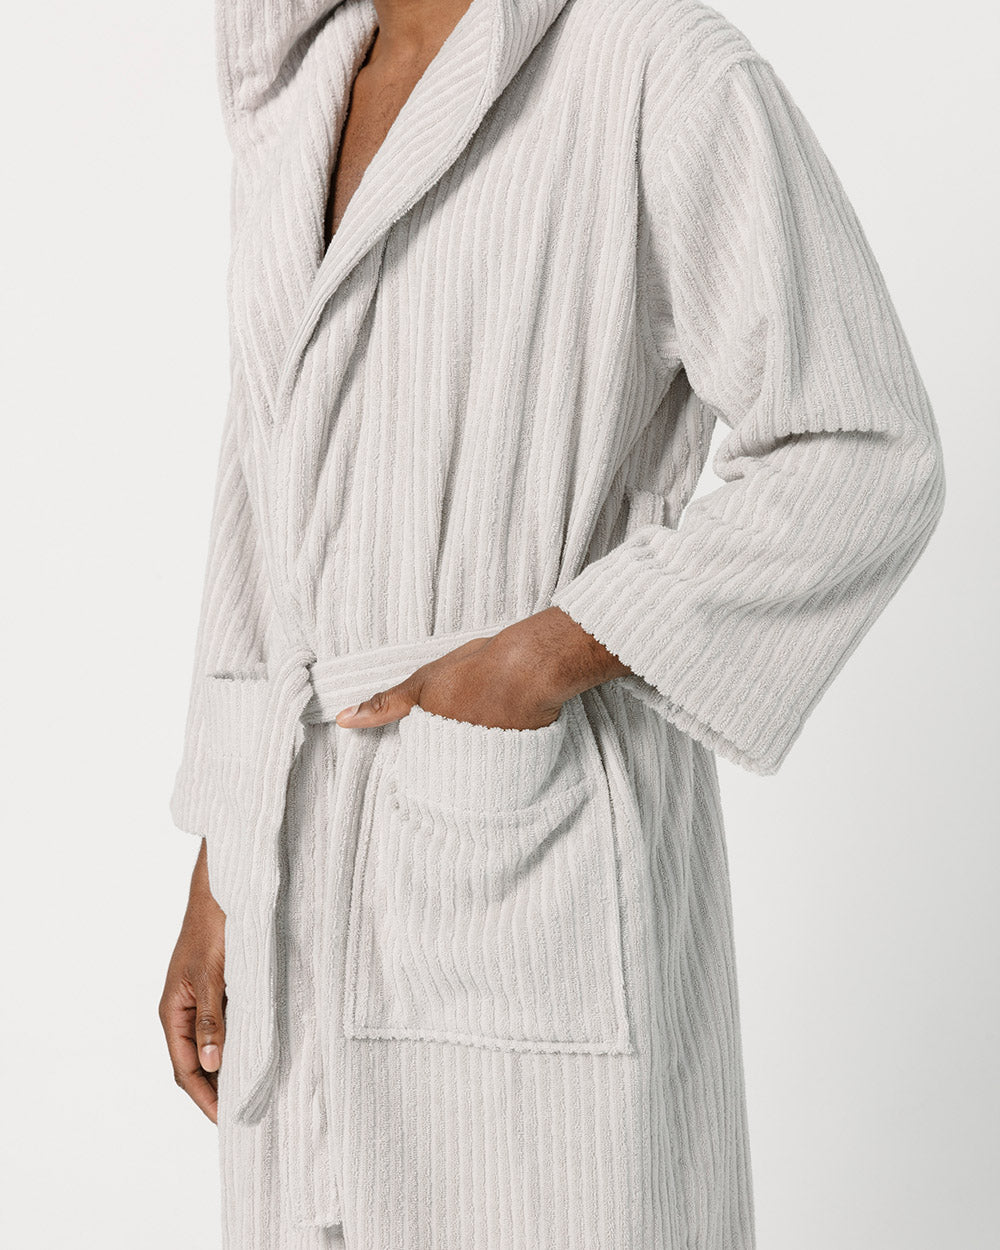 Cloud Grey Bathrobe